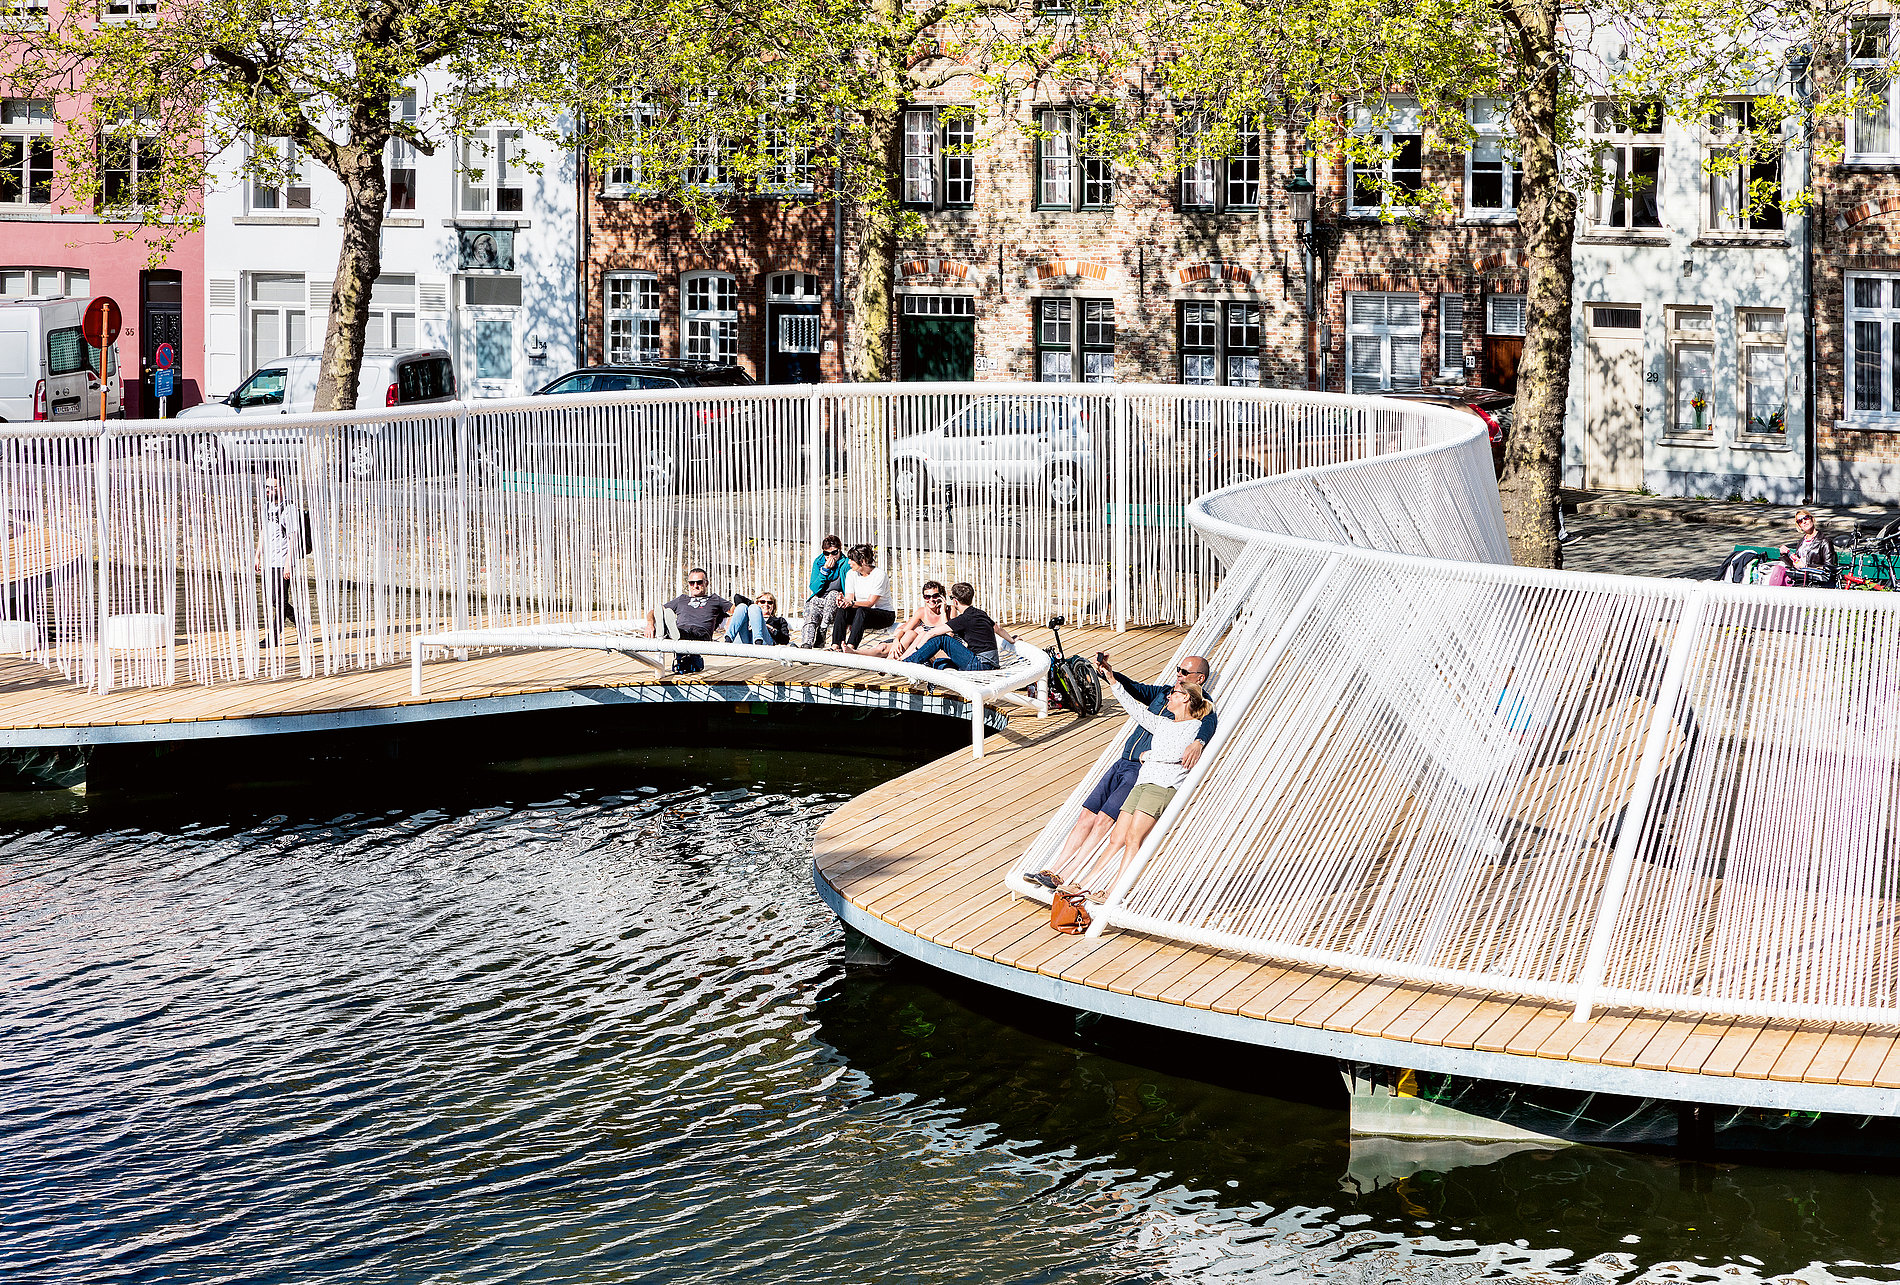 The Floating Island | Red Dot Design Award